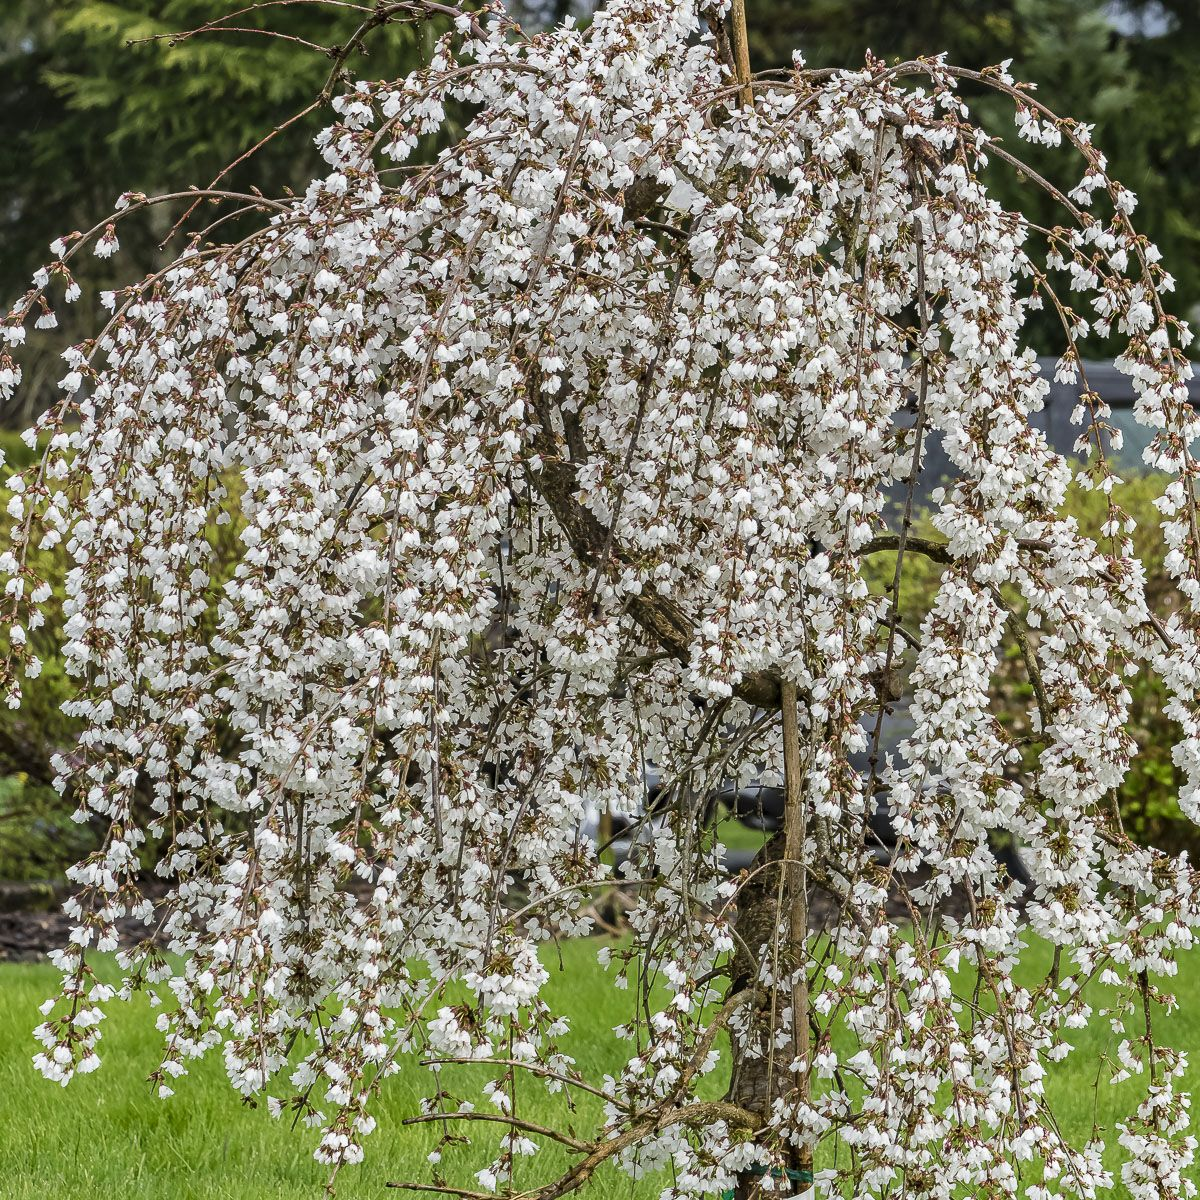 Flower Of The Day March 29 2017 Mt High Weeping Cherry Tree